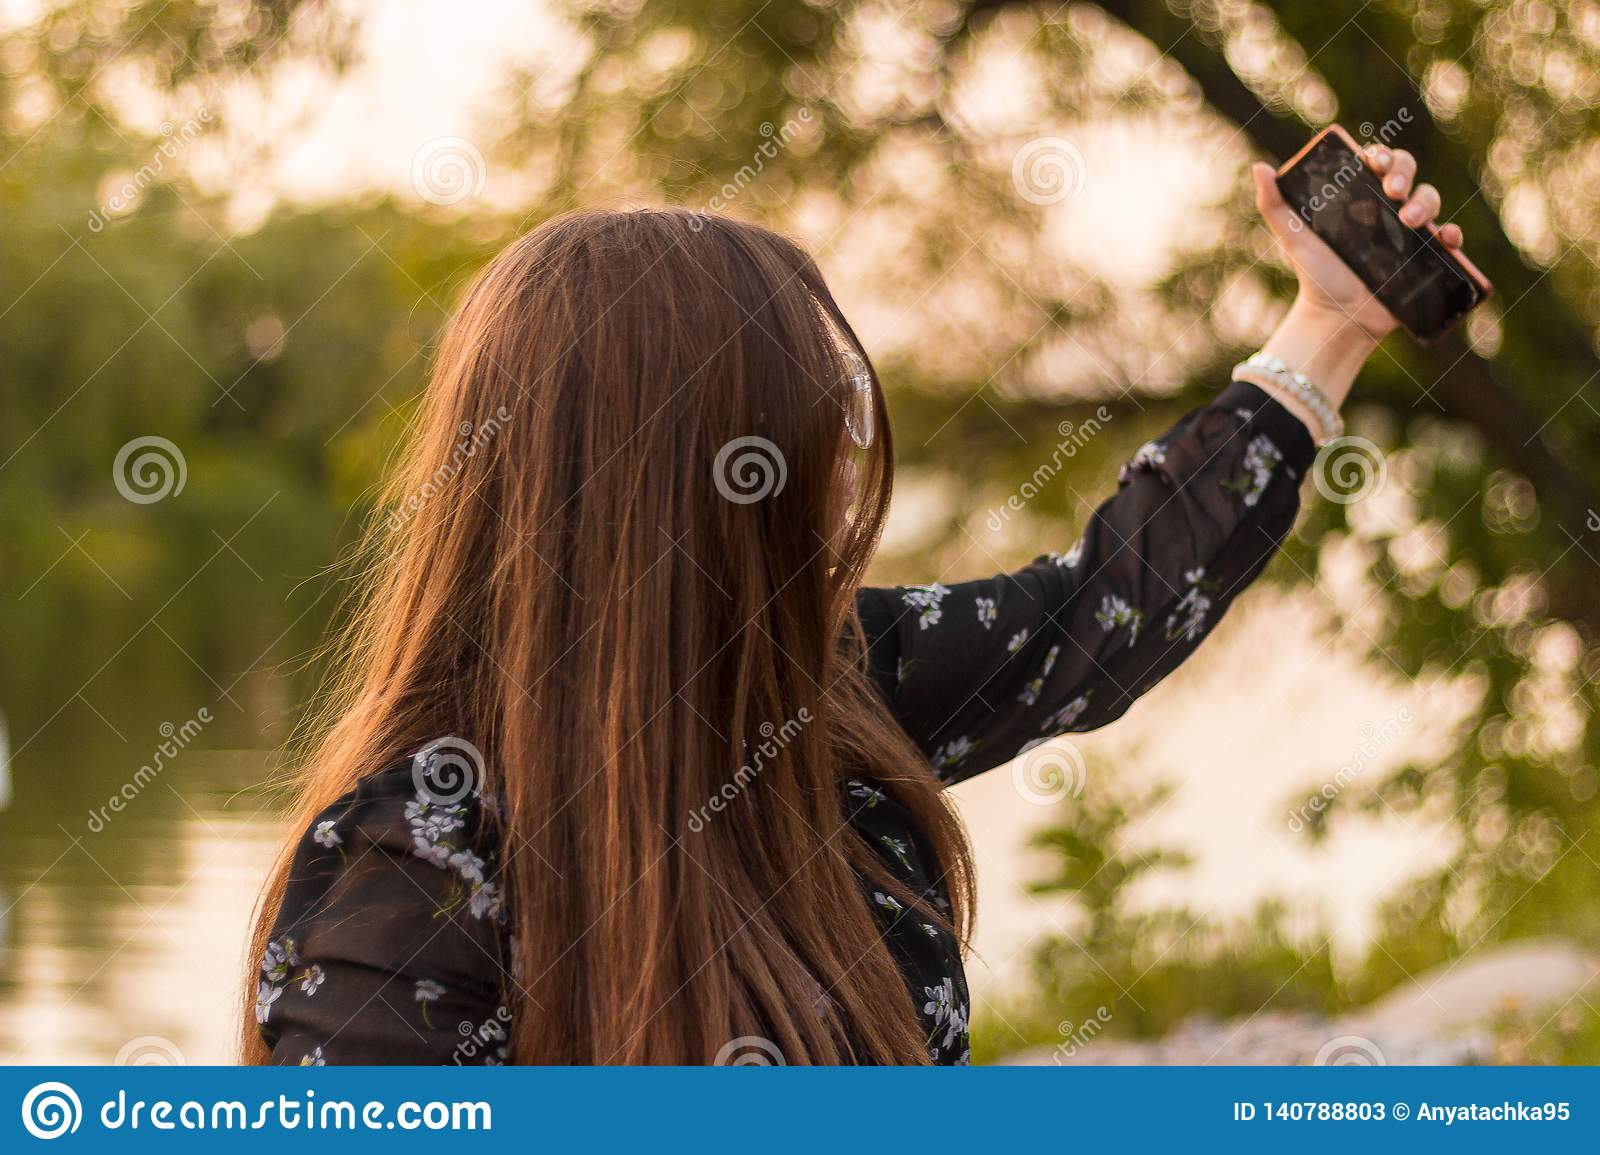 Cheerful girl making selfie on in park. Close up smiling girl photographing selfie on phone, girl is unfocused